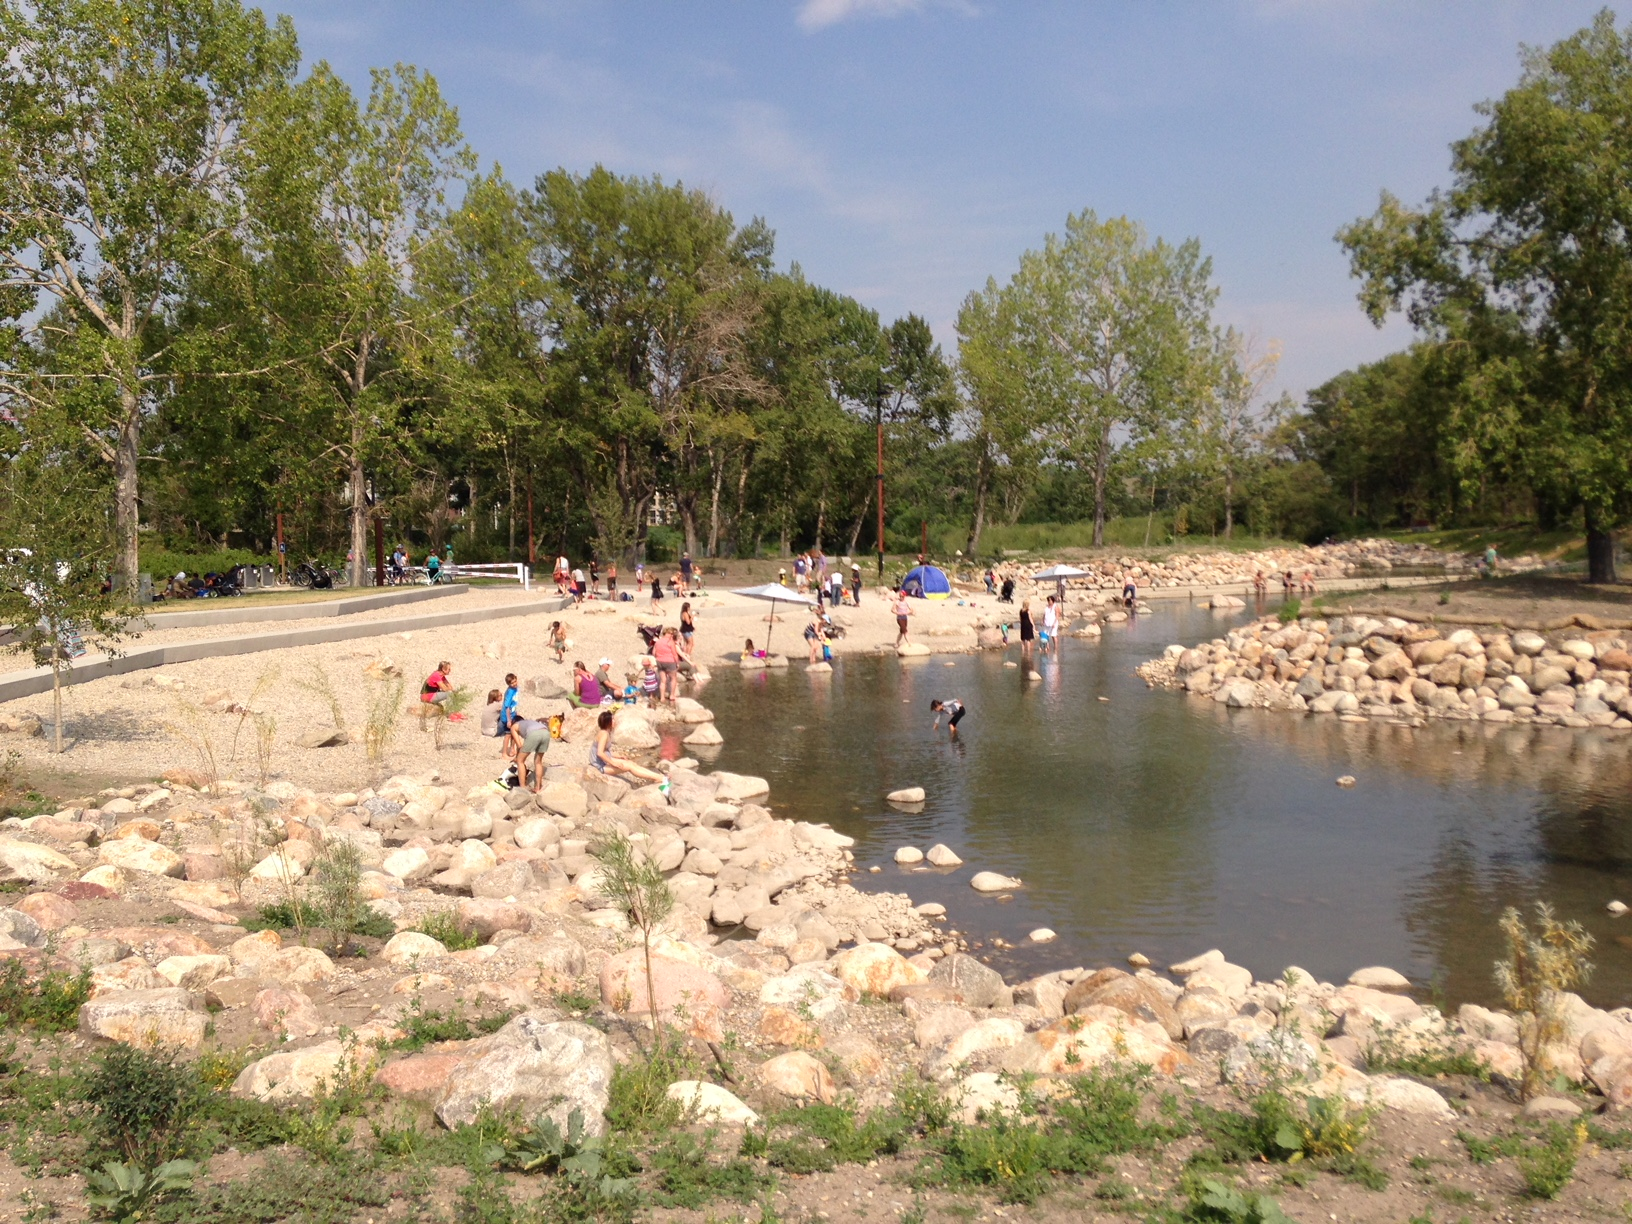 Calgary's St. Patrick's Island has recently been transformed into a popular public space for Calgarians of all ages.